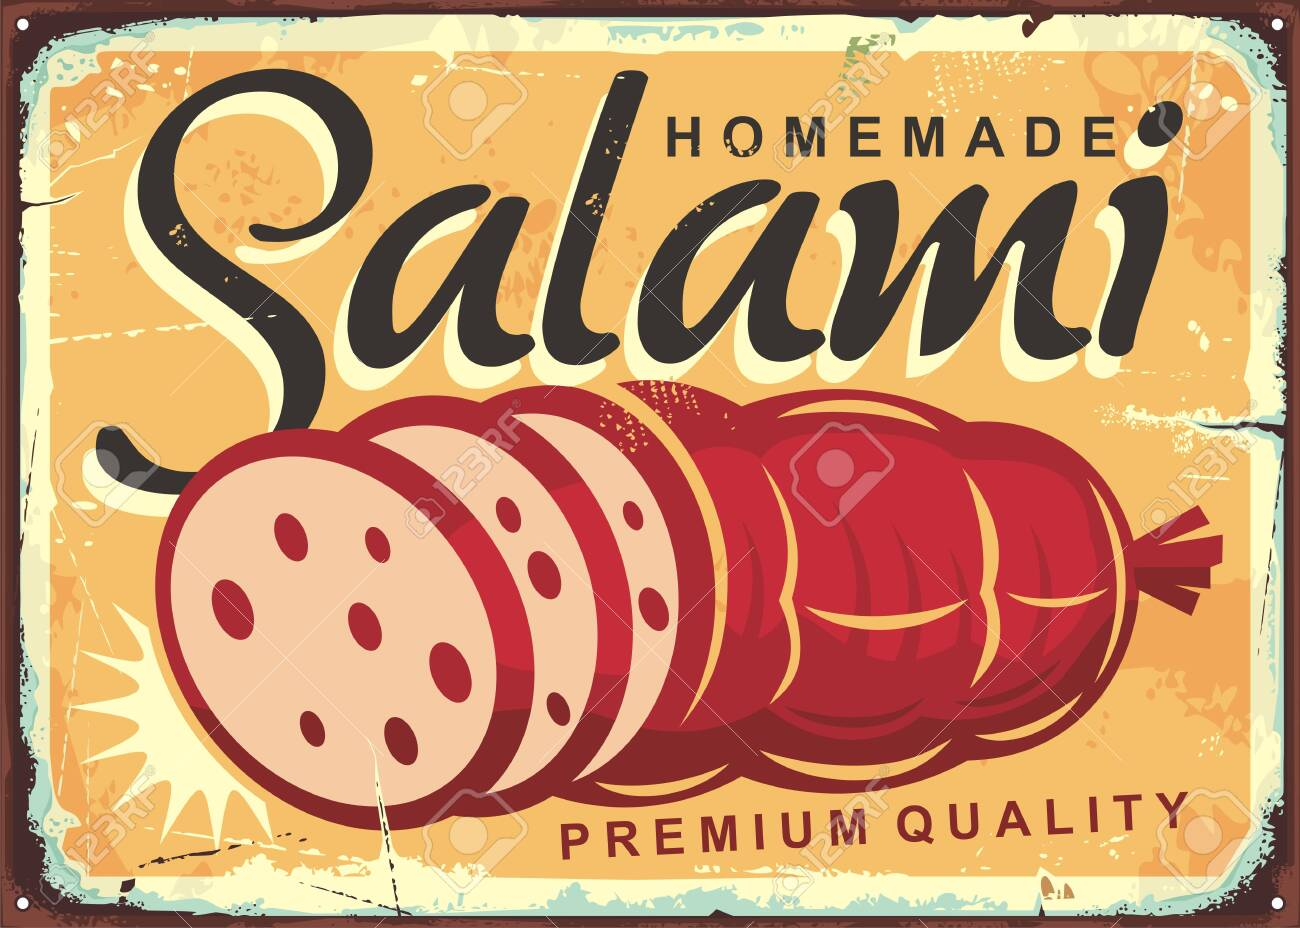 Homemade salami retro poster design with fresh meat product. Vintage tin sign with delicious sausage on old yellow background. - 135172486